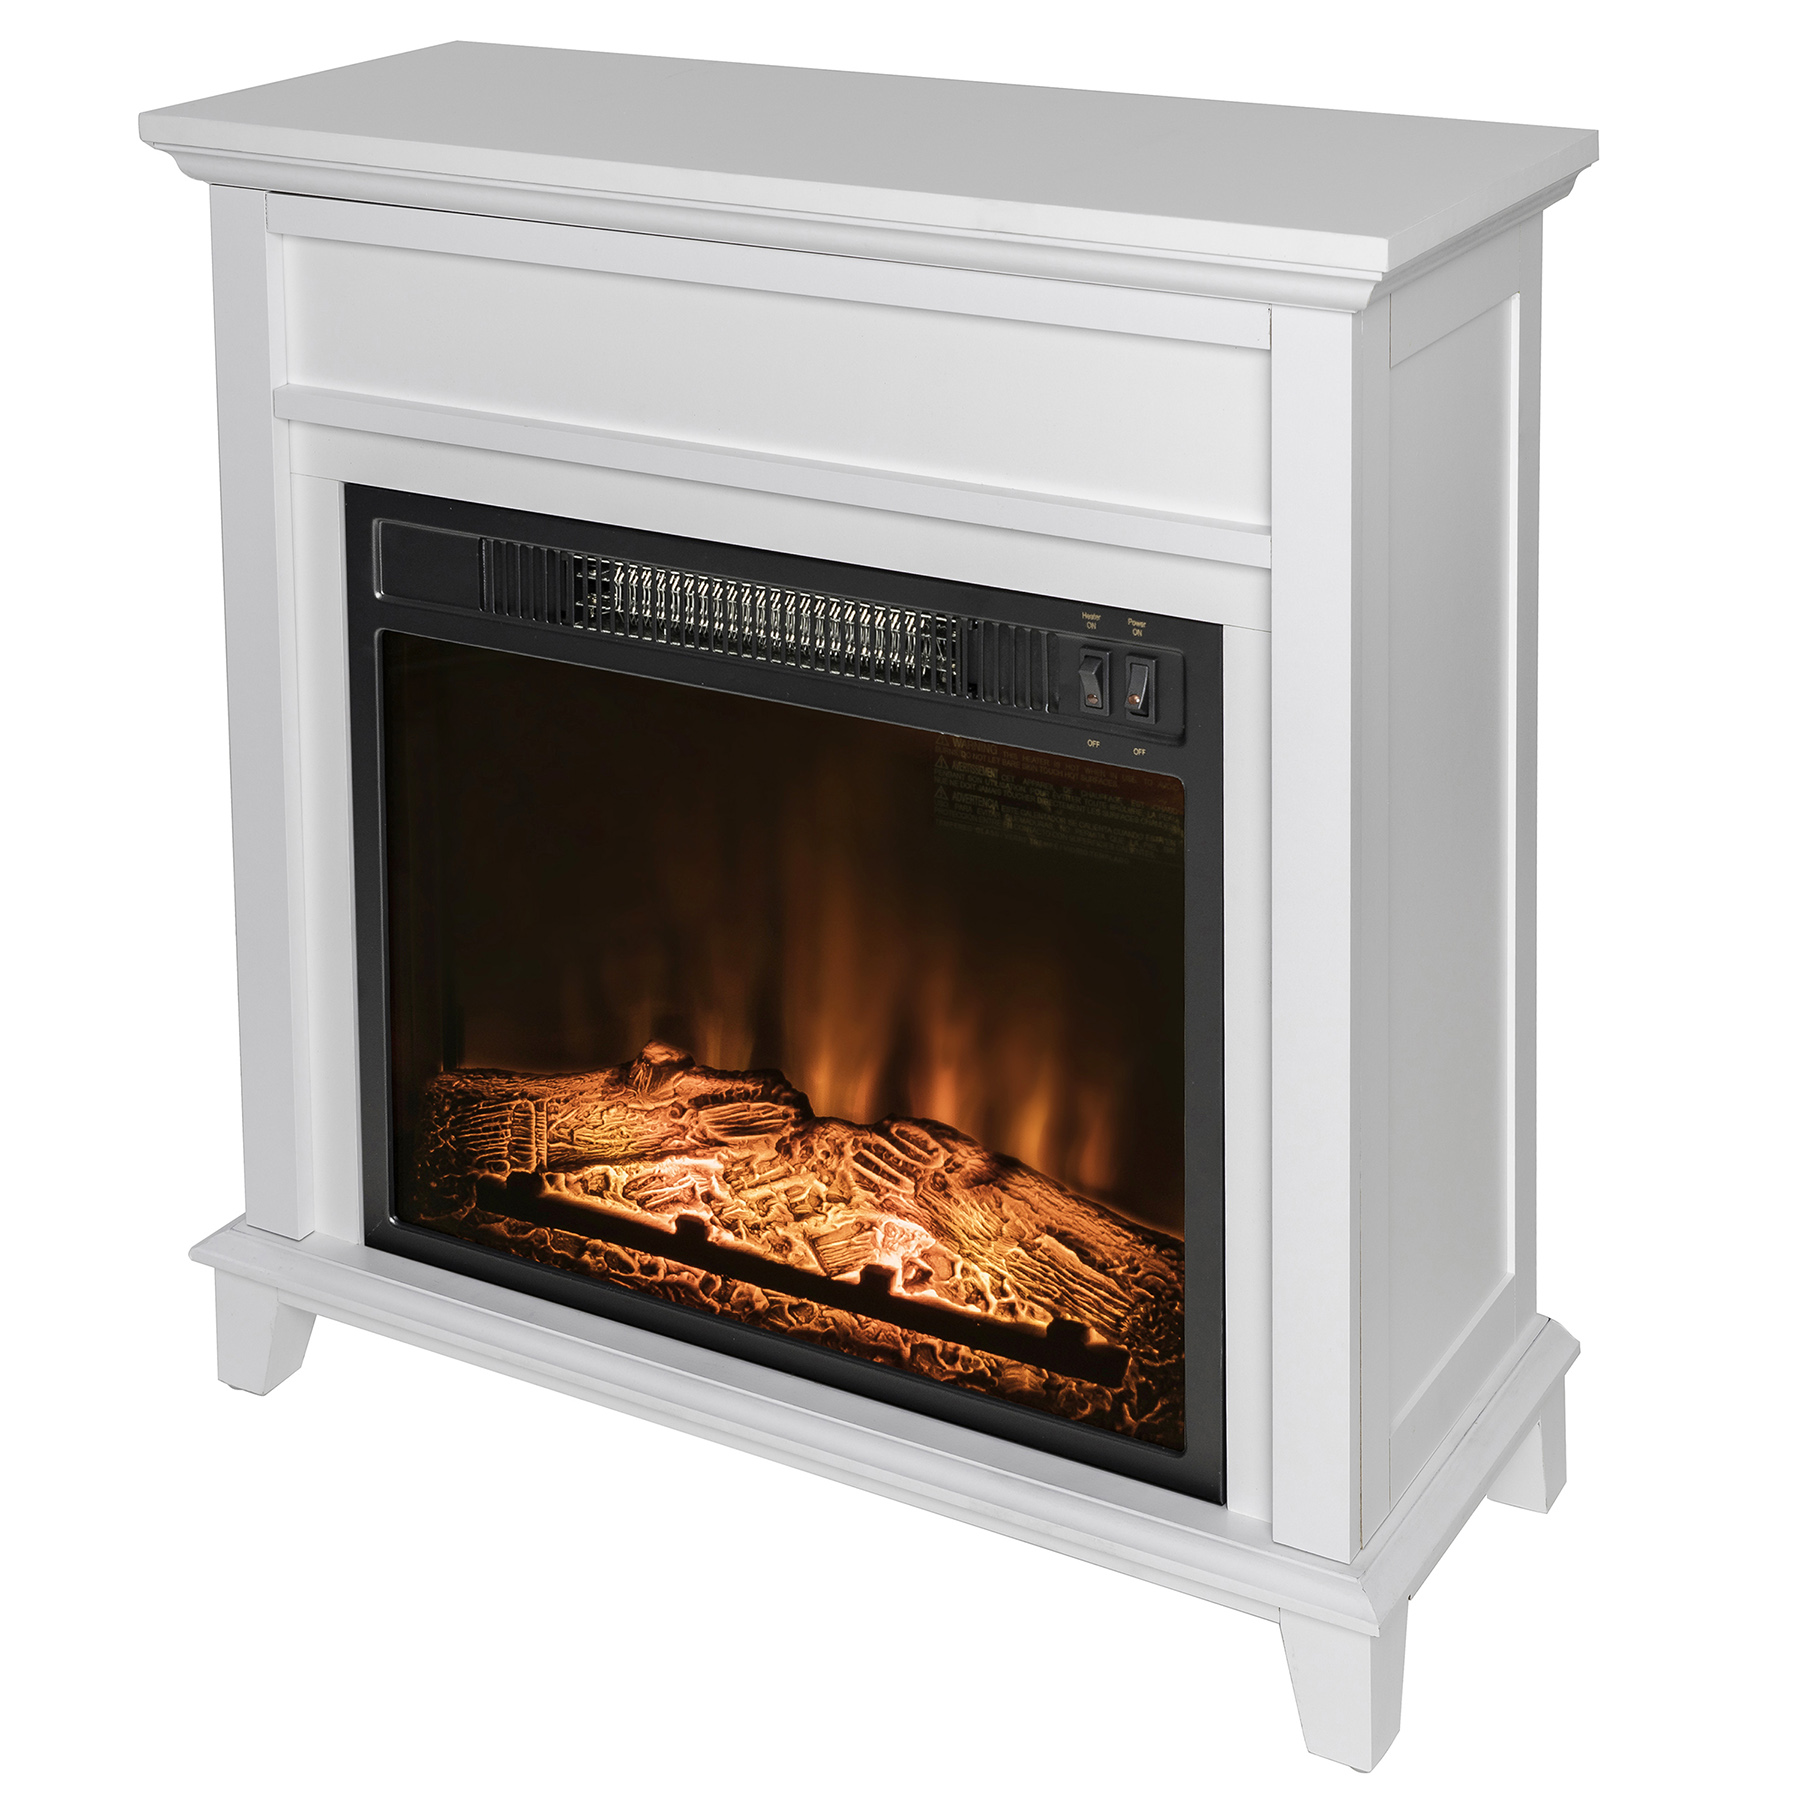 "AKDY FP0094 27"" Electric Fireplace Freestanding White Wooden Mantel Firebox Heater 3D Flame w/ Logs"